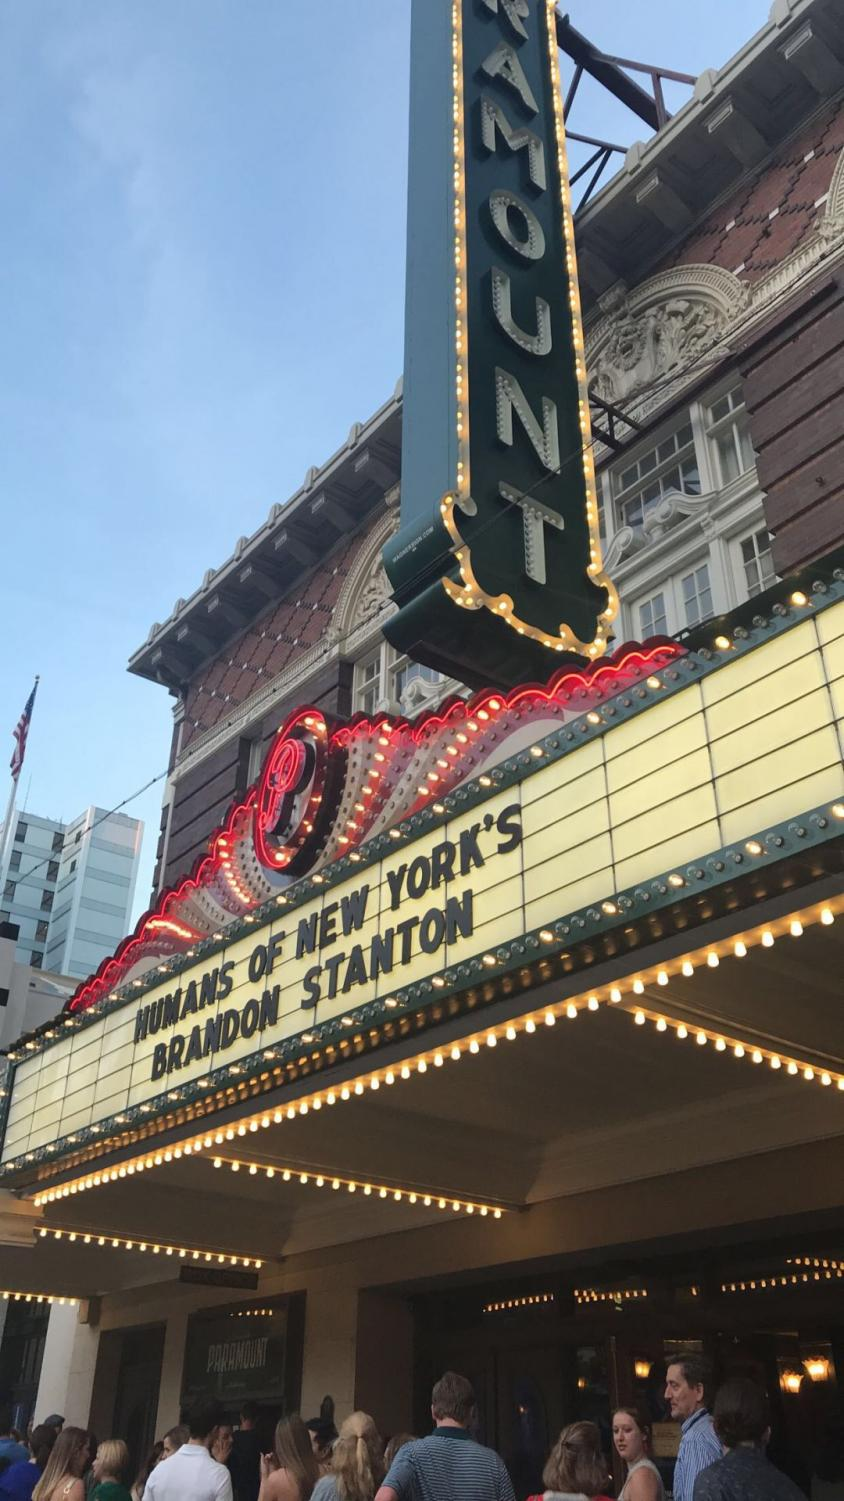 Brandon Stanton's show at Paramount Theatre sold out.